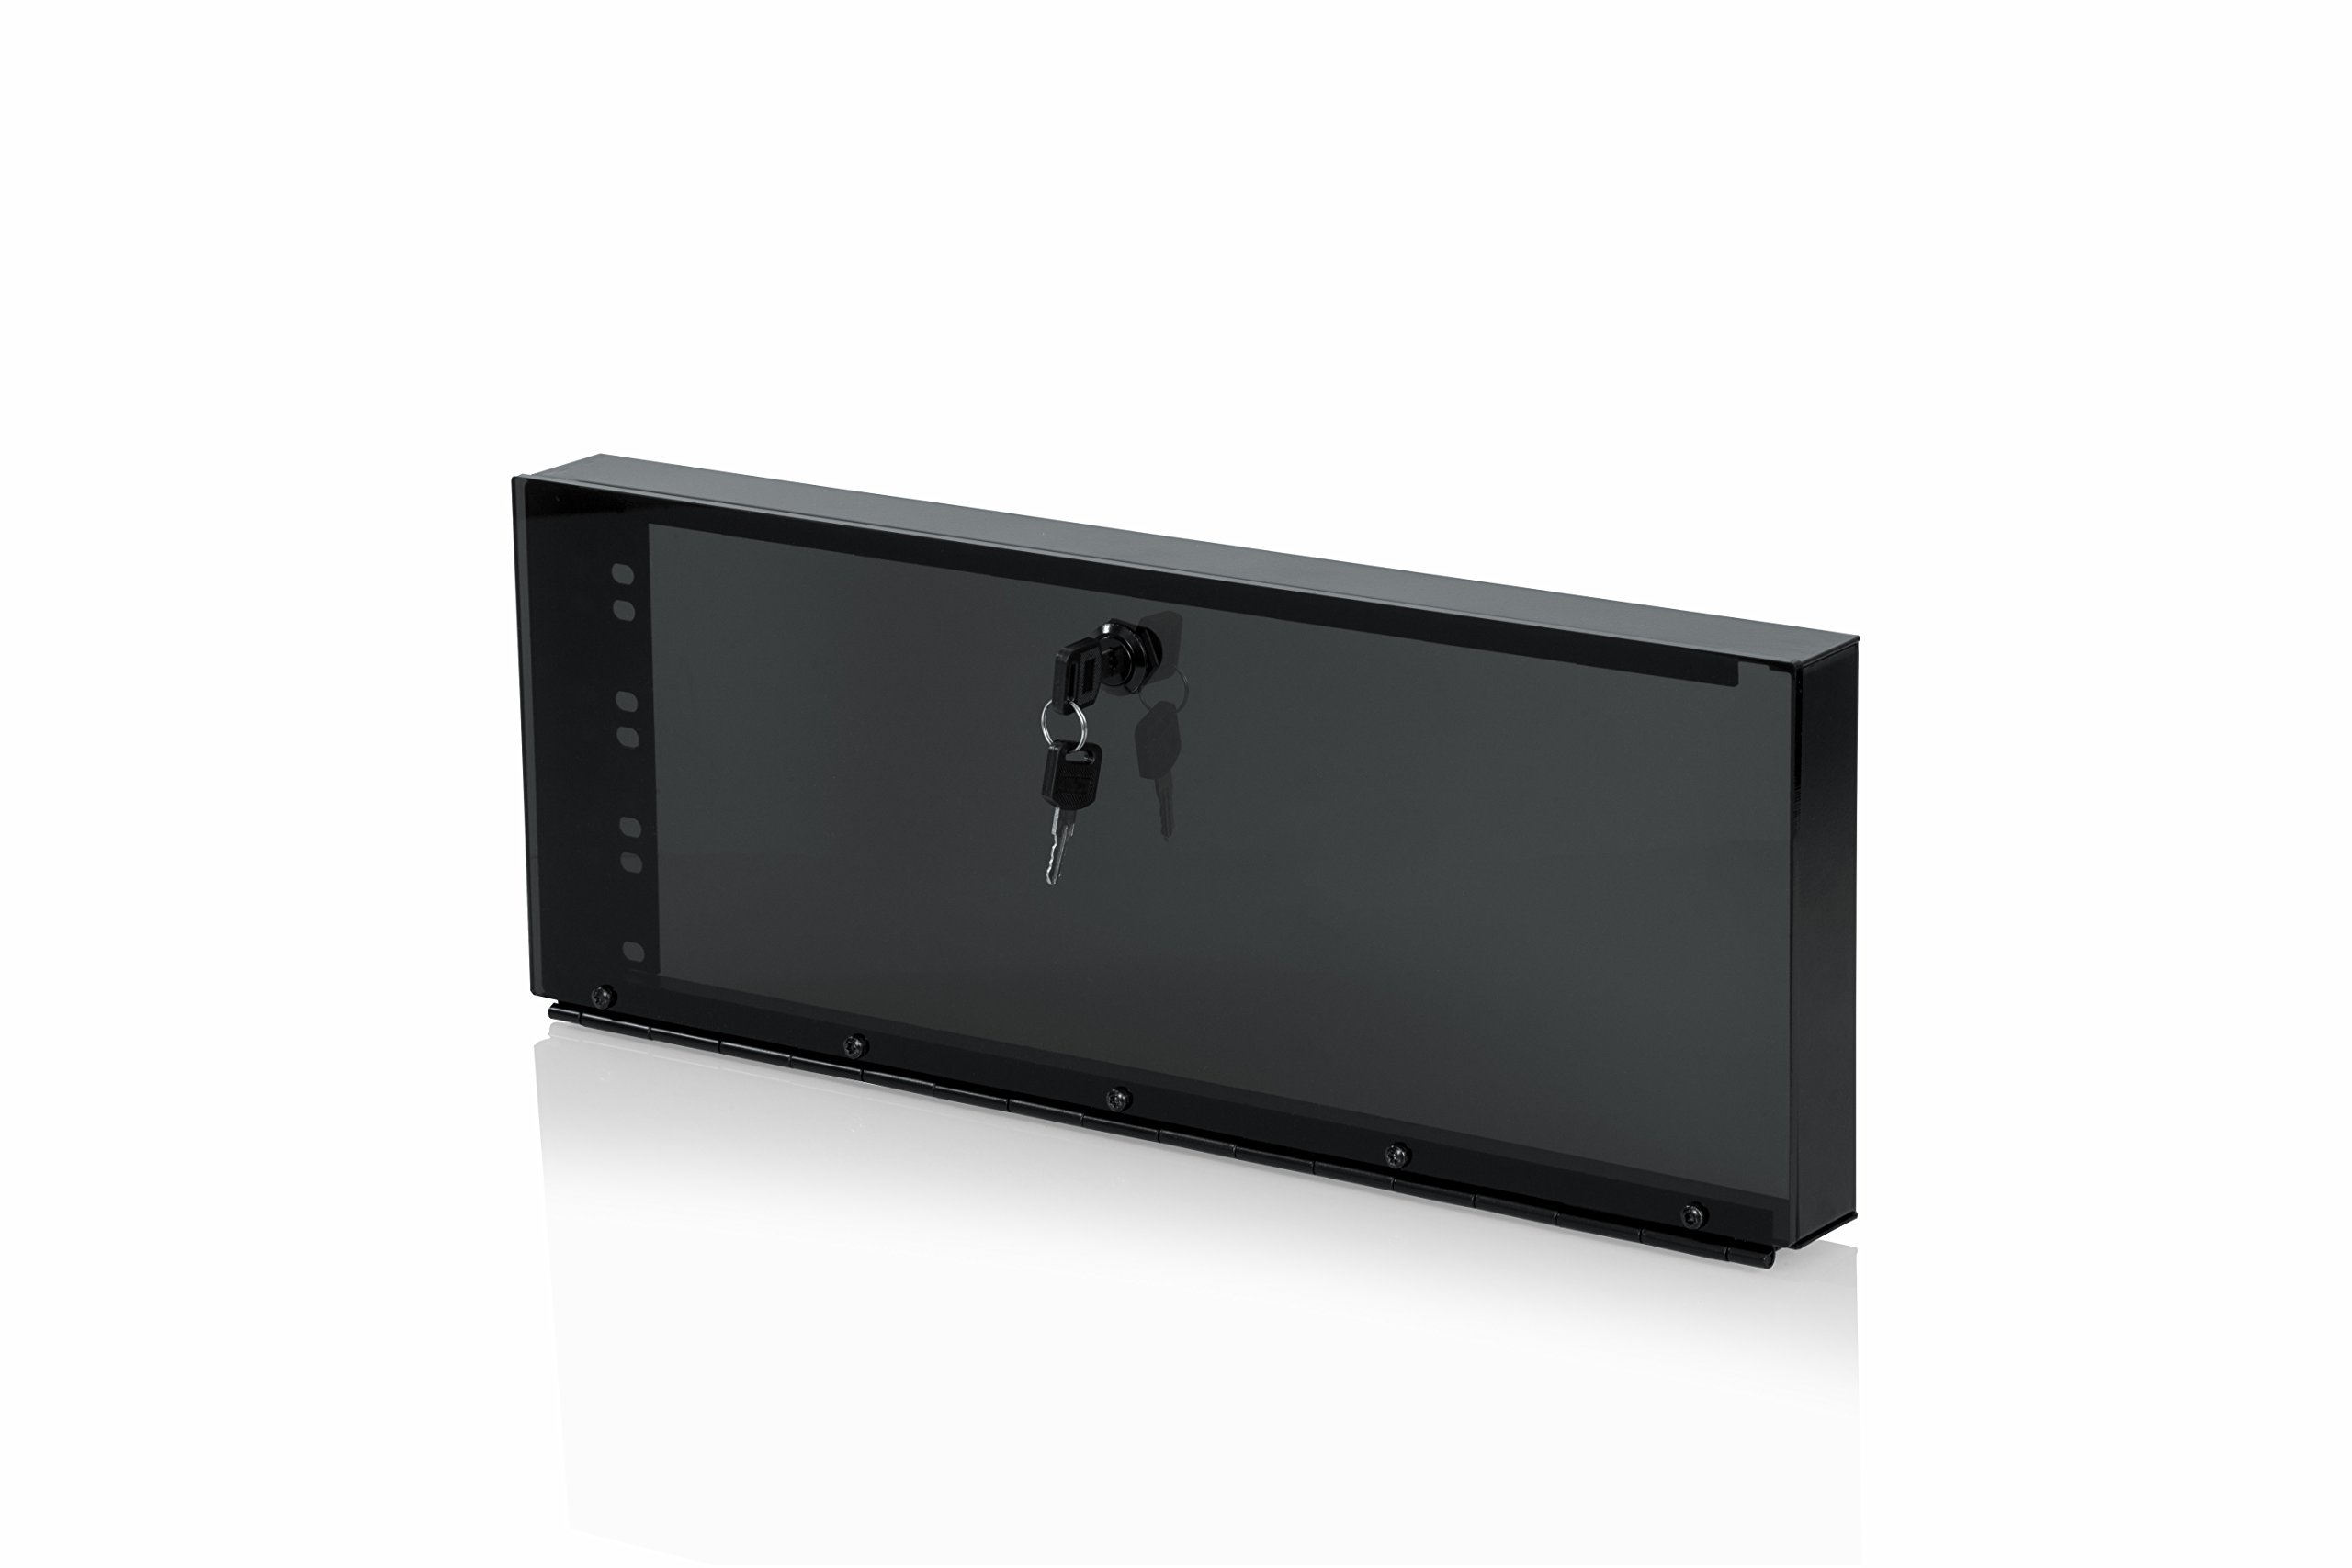 Gator Rackworks Rack Mount Hinged Plexi Security Panel; 4U Size (GRW-PNLSECPLX-4) by Gator (Image #1)